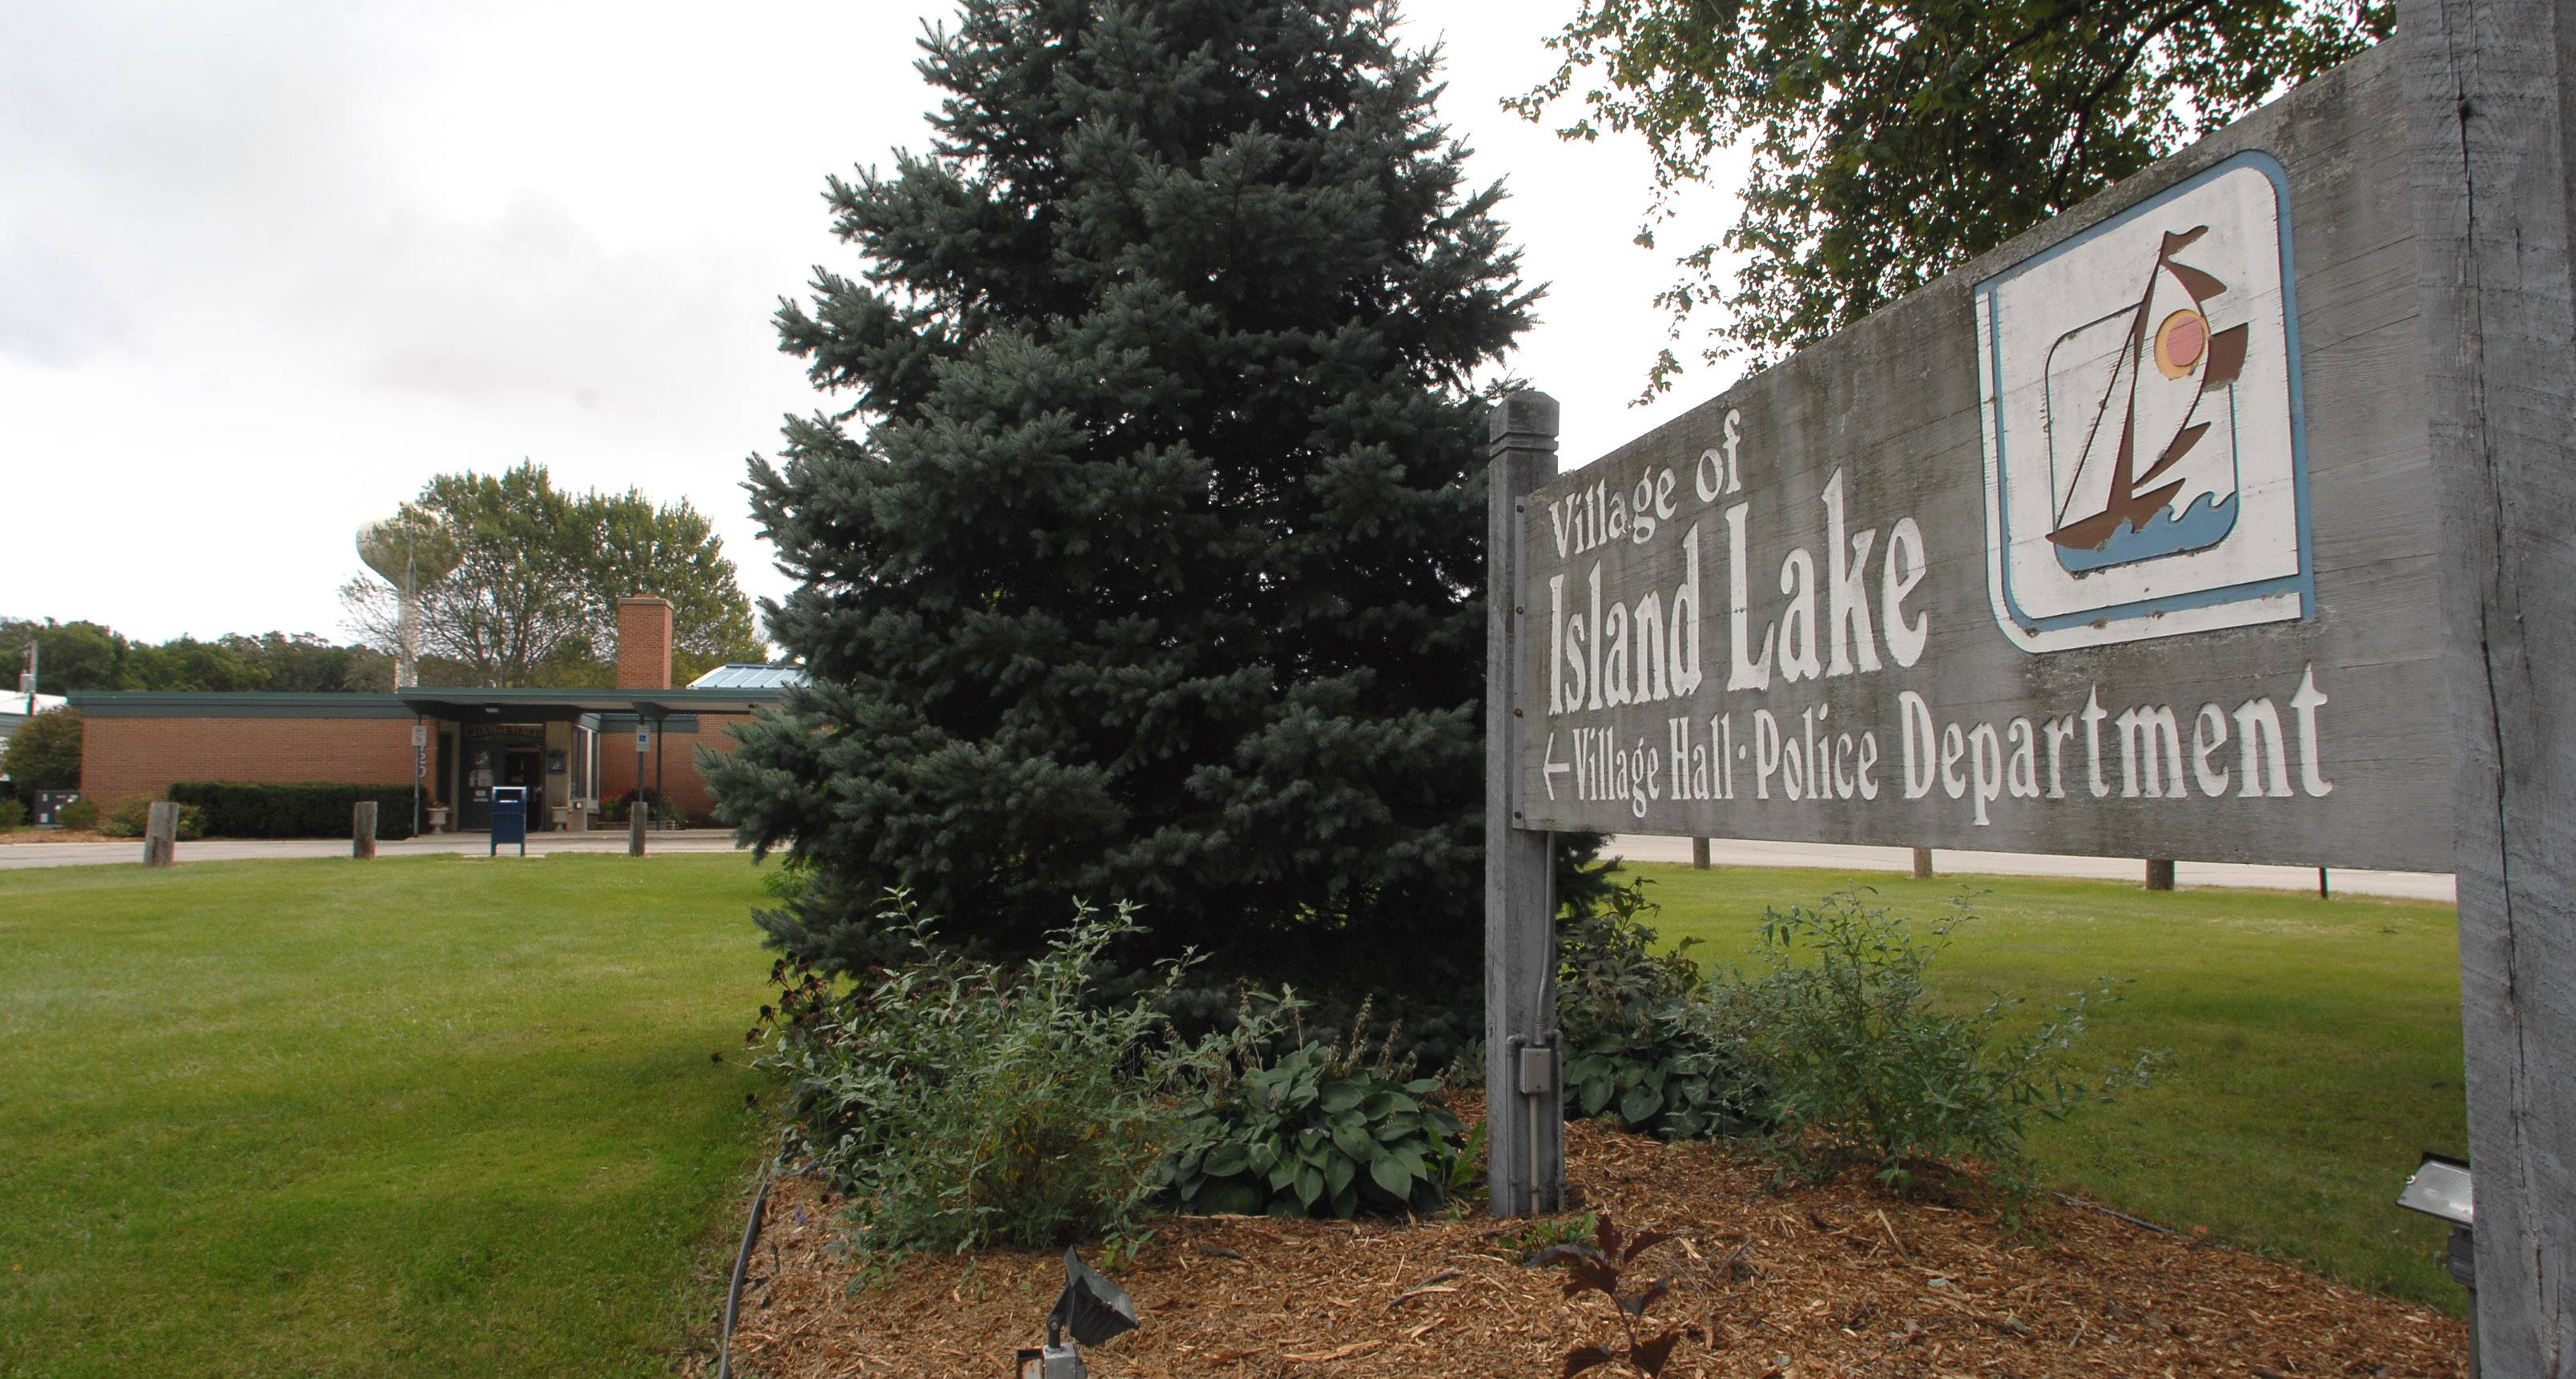 Island Lake officials have hired a labor attorney to investigate harassment complaints in the police department and at village hall.